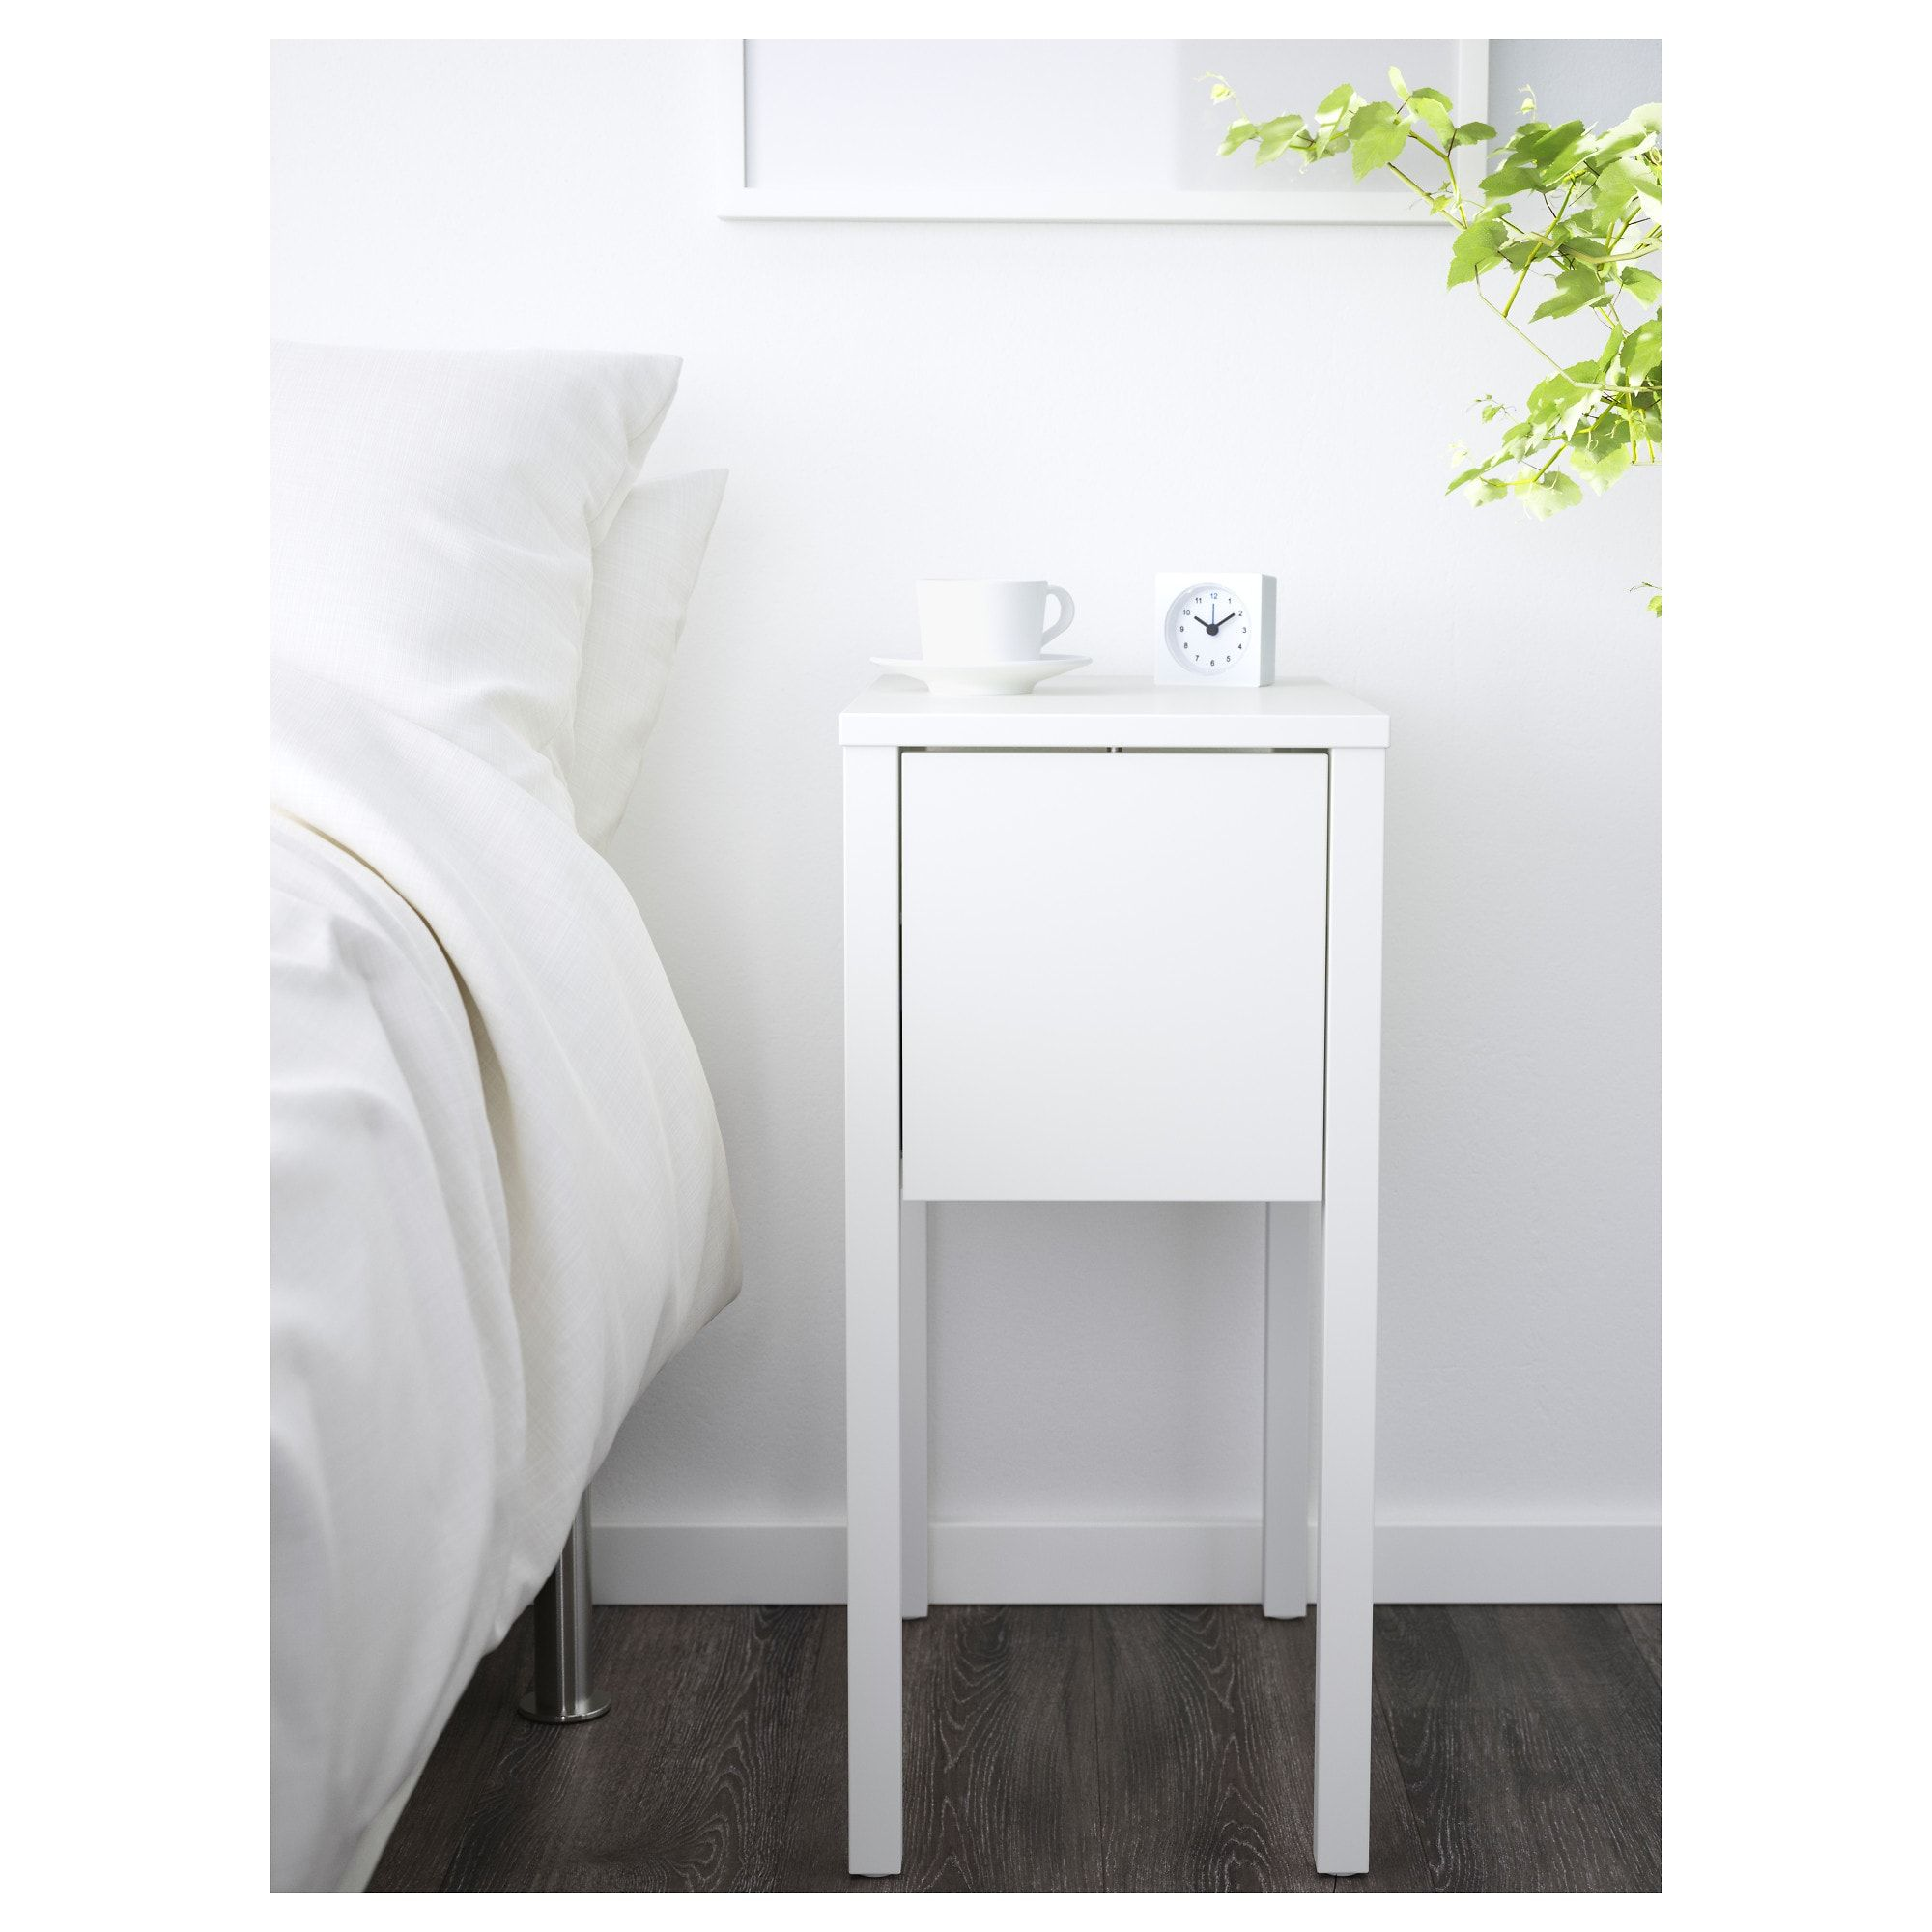 Furniture Furniture Singapore Home Decor Ikea Nordli